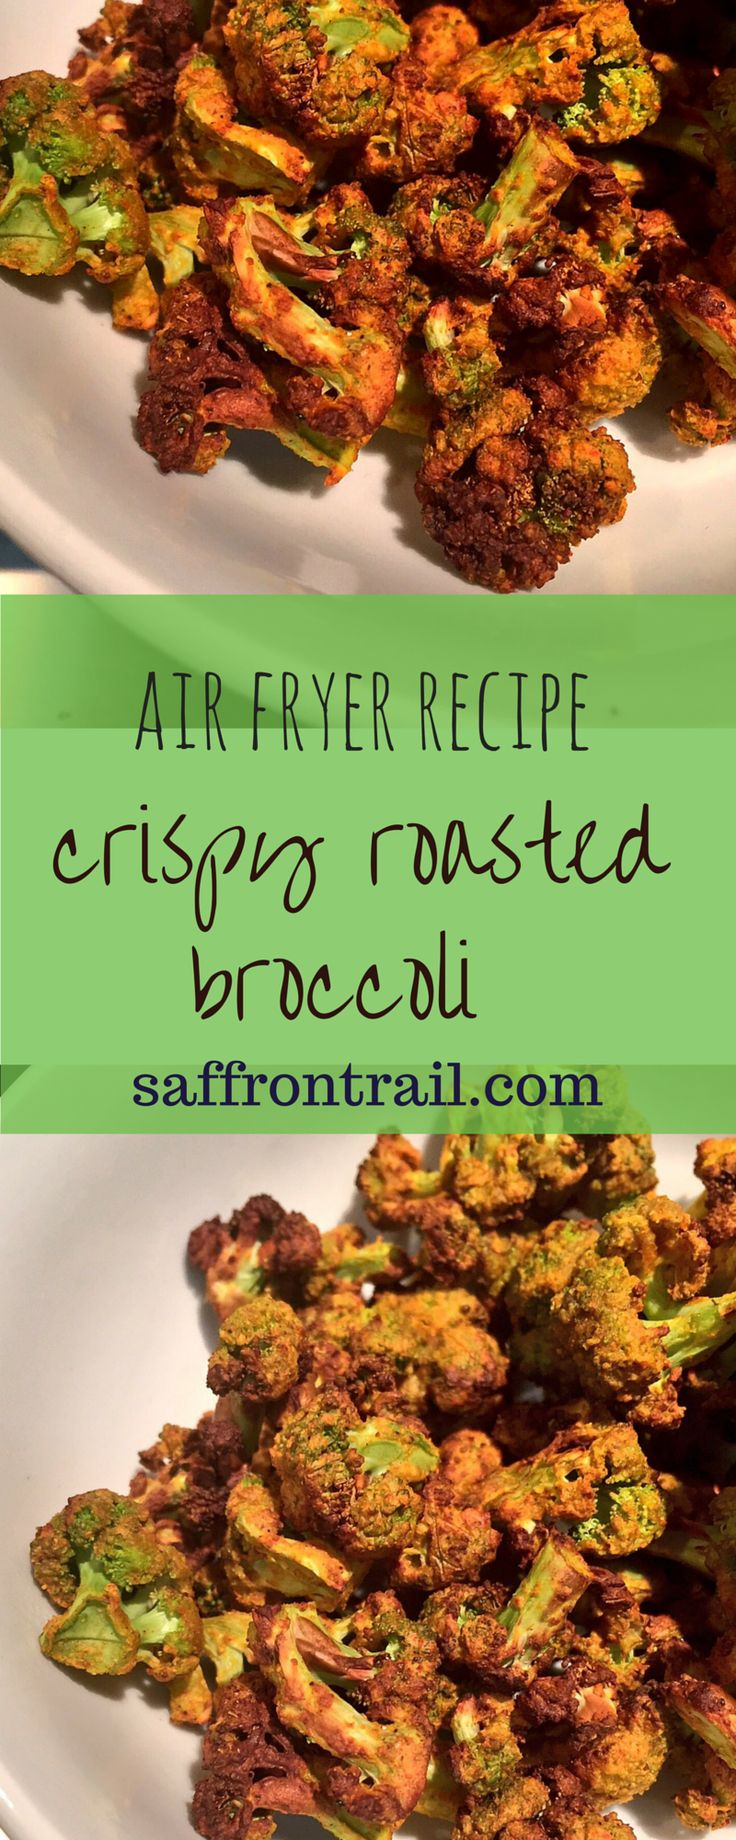 You MUST try this recipe for zero-oil crispy roasted broccoli in Air Fryer - 96 calories per serving. Makes a healthy snack or an easy fast-day recipe (5-2 diet) - full of protein and fibre.